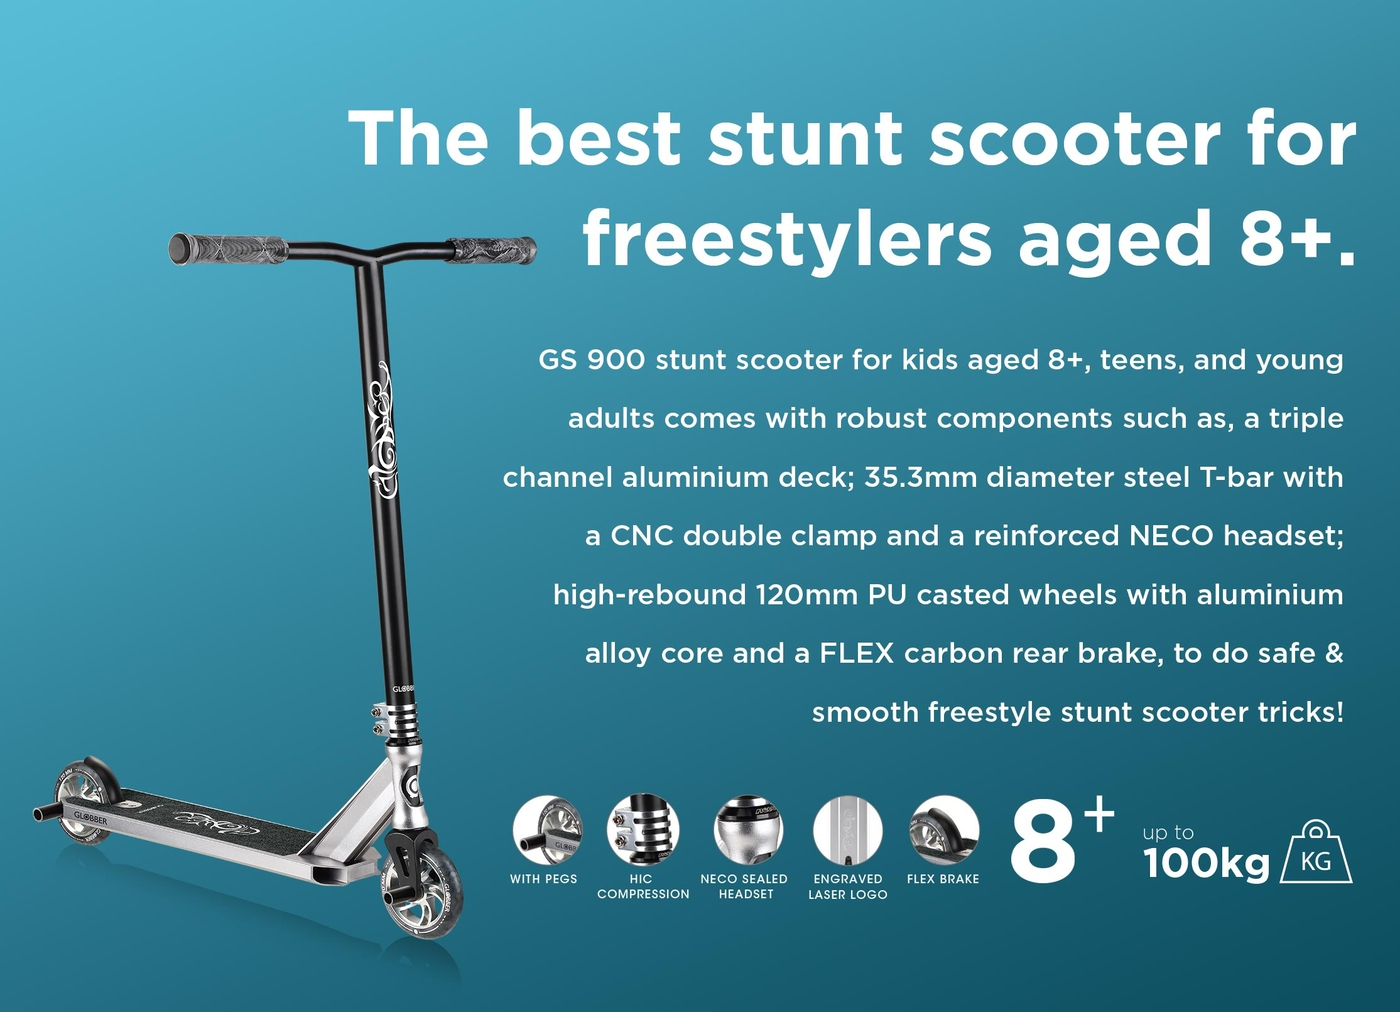 The best stunt scooter for freestylers aged 8+.